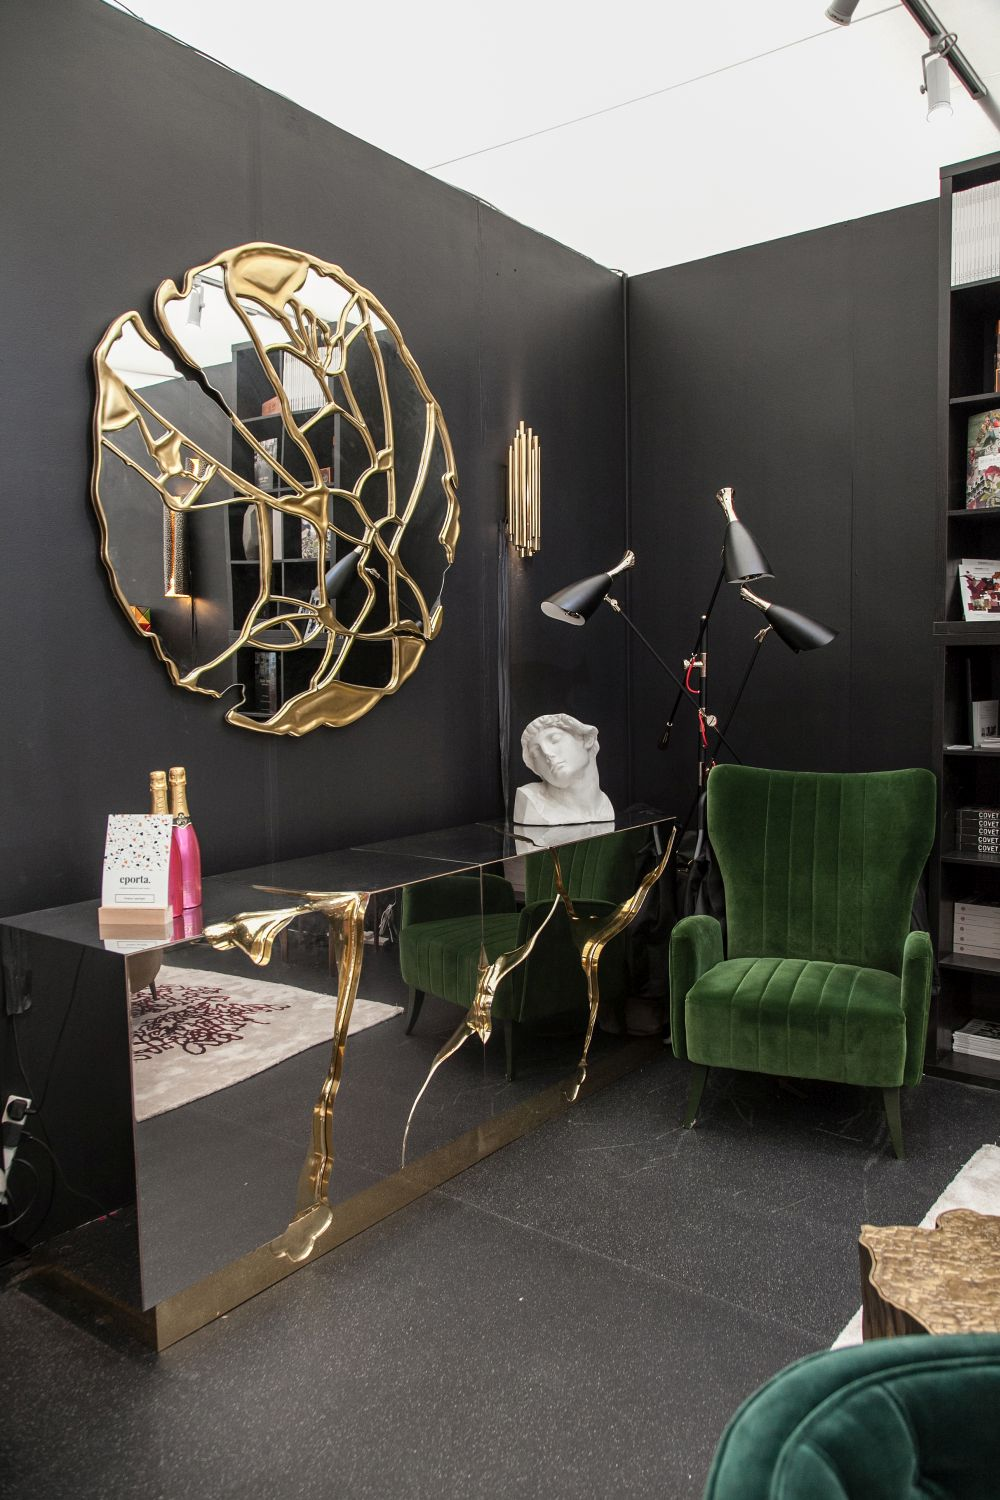 1560941273 535 fun wall designs to turn a blank space into a terrific decor element - Fun Wall Designs To Turn a Blank Space into a Terrific Decor Element